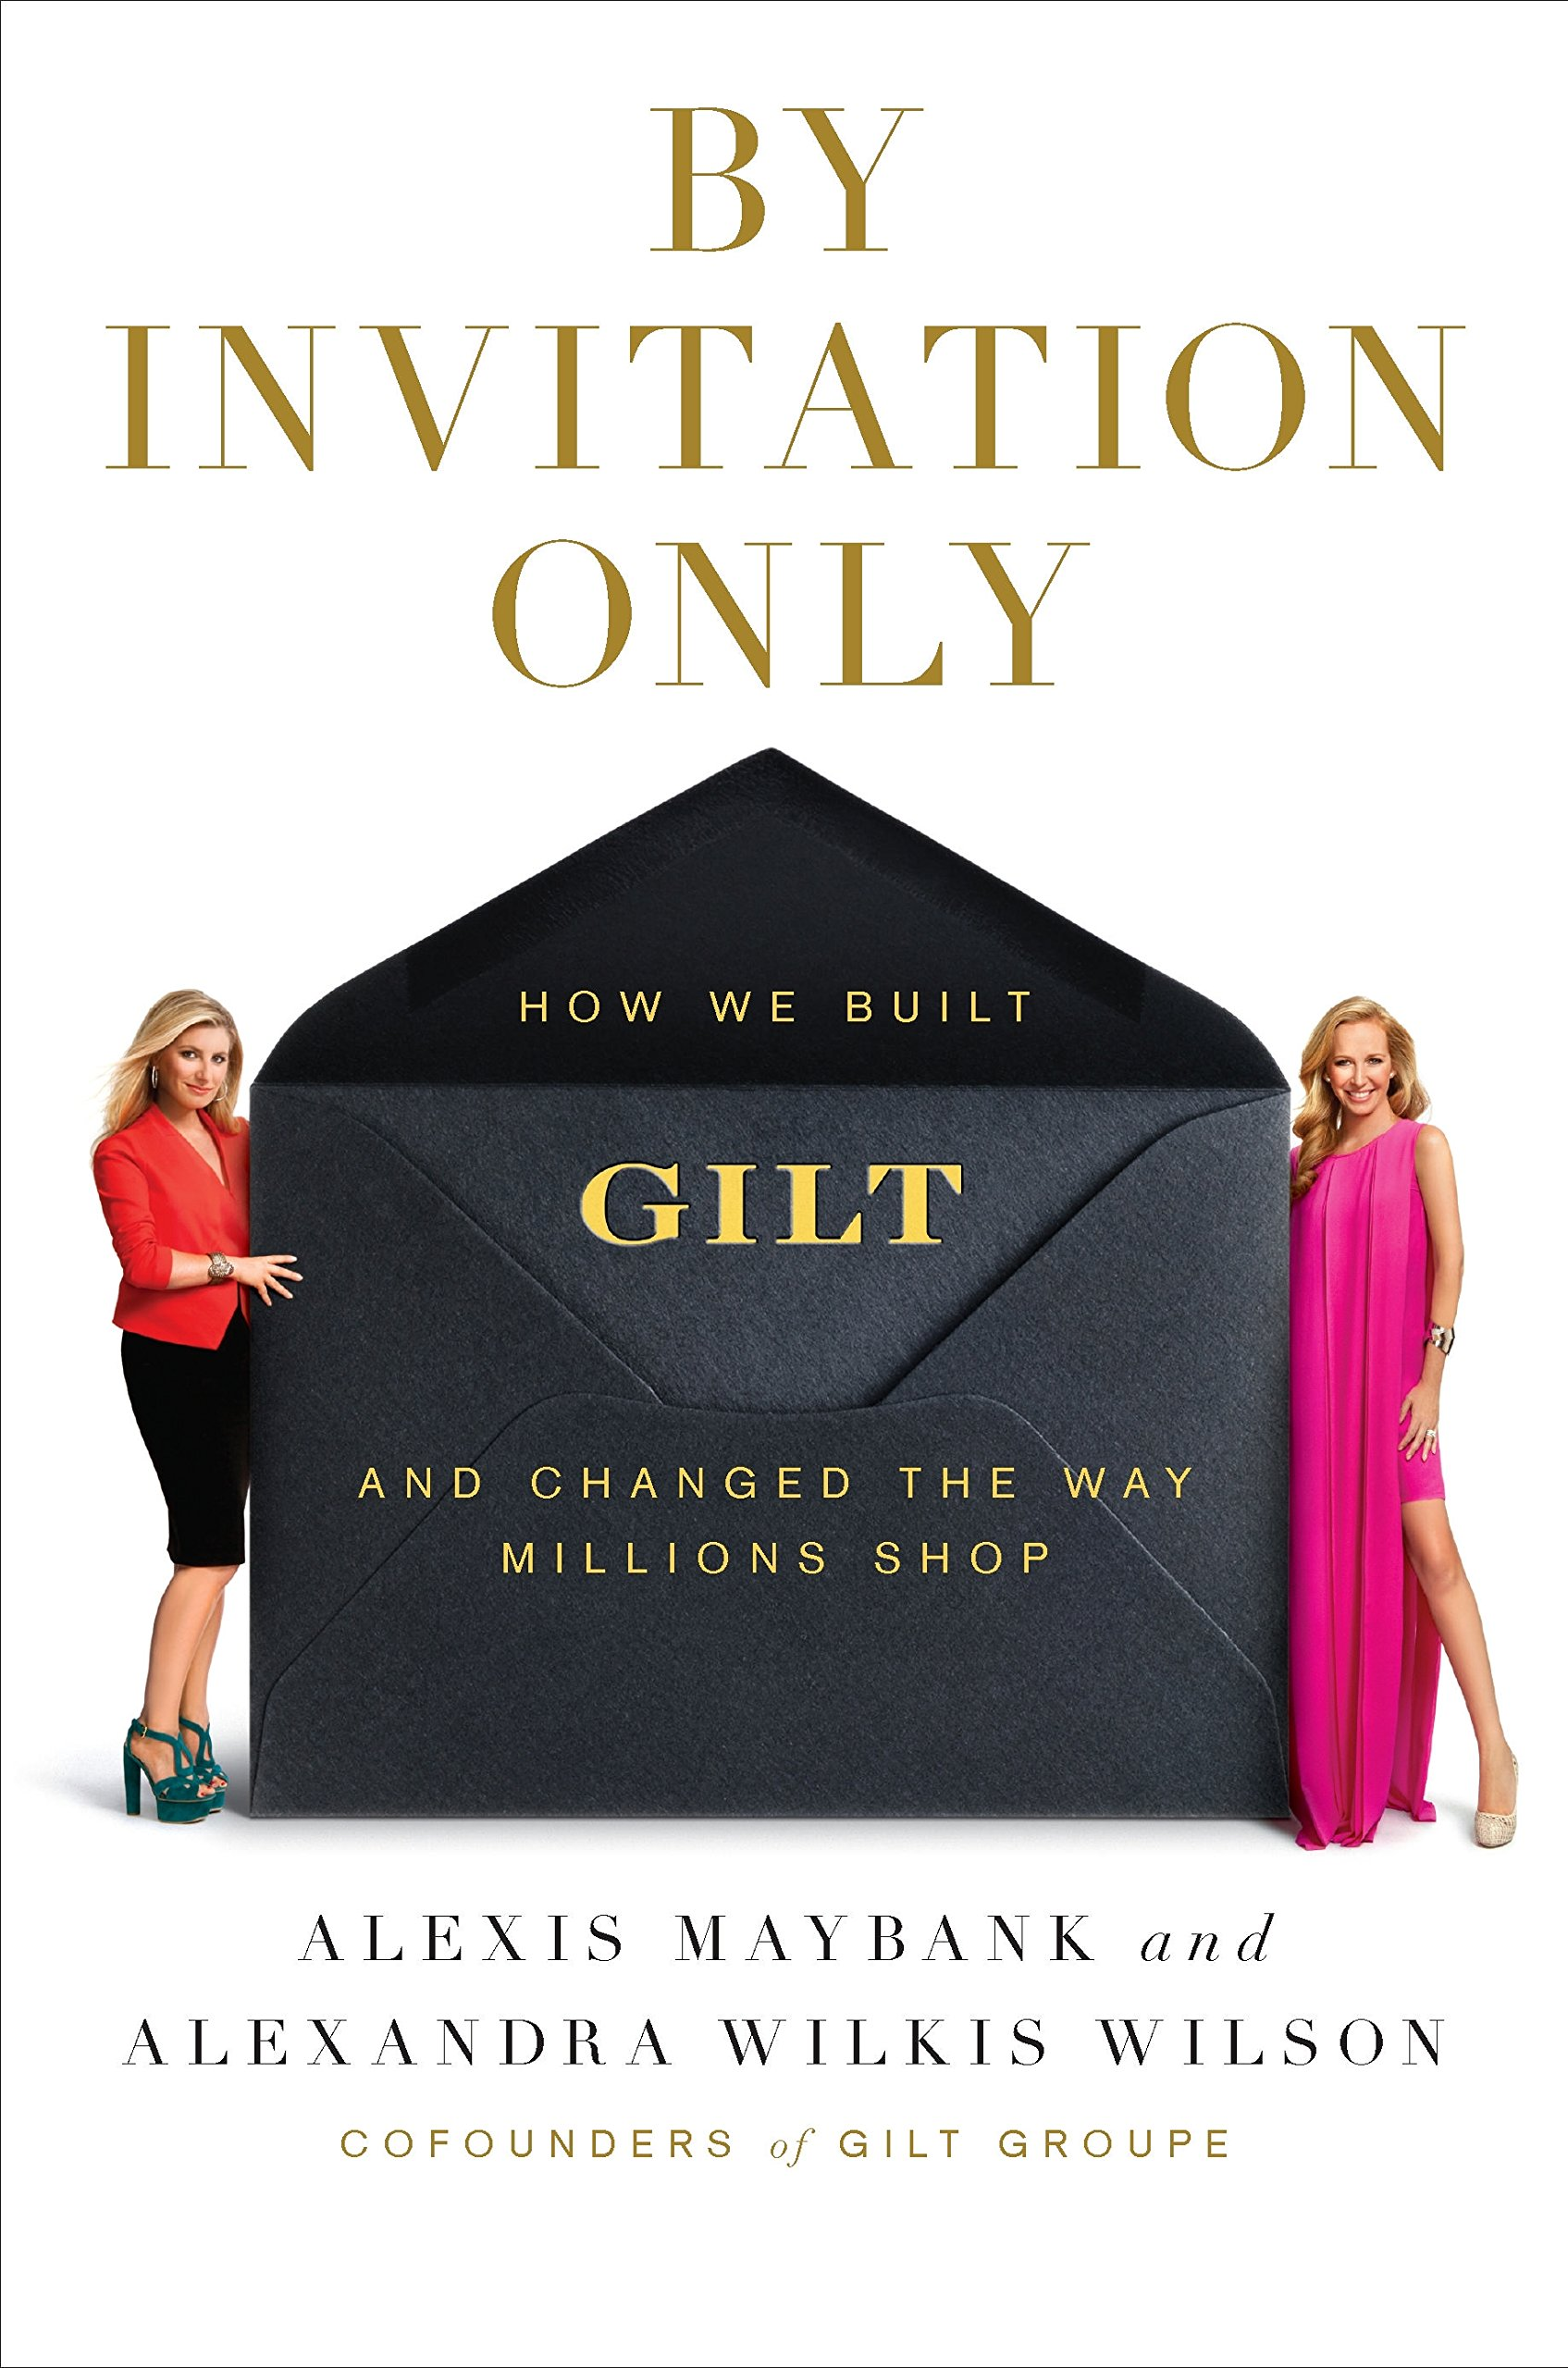 By invitation only how we built gilt and changed the way millions by invitation only how we built gilt and changed the way millions shop alexis maybank alexandra wilkis wilson 9781591844631 amazon books stopboris Images